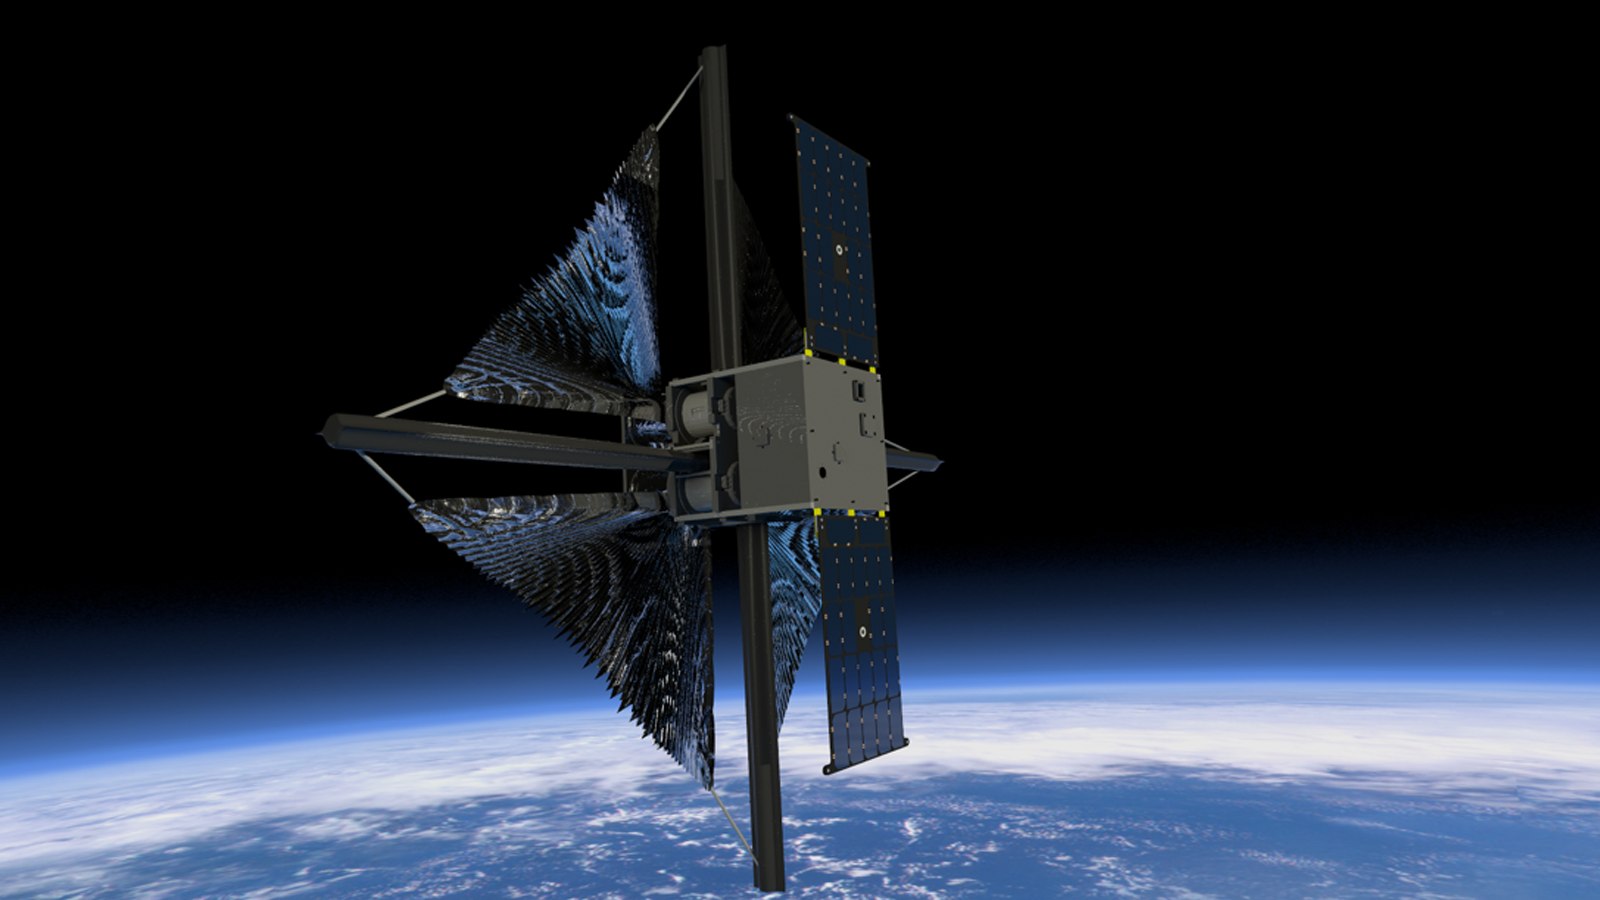 Illustration showing the solar sail beginning to unfurl after deployment of the spacecraft's solar arrays